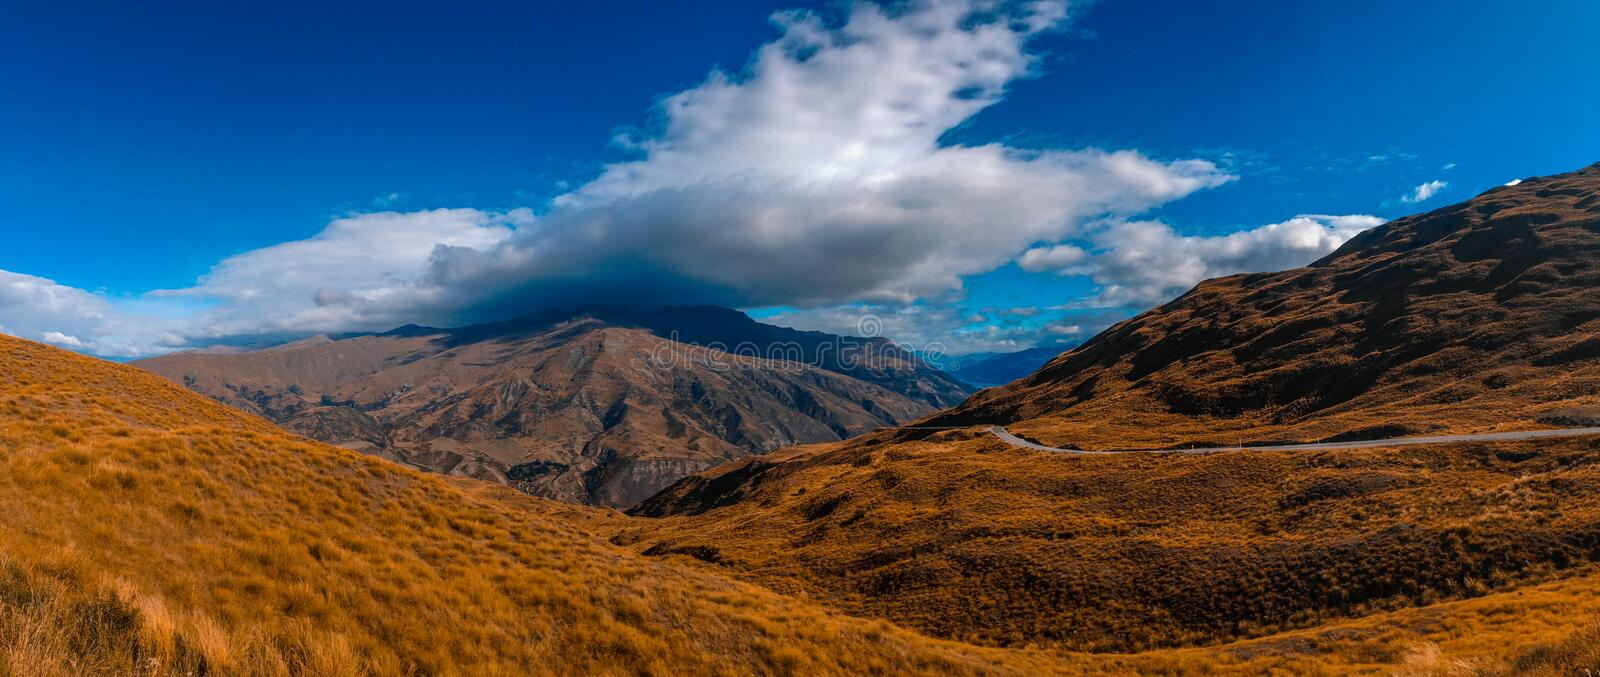 Mountainous landscape near Queenstown in New Zealand stock photo